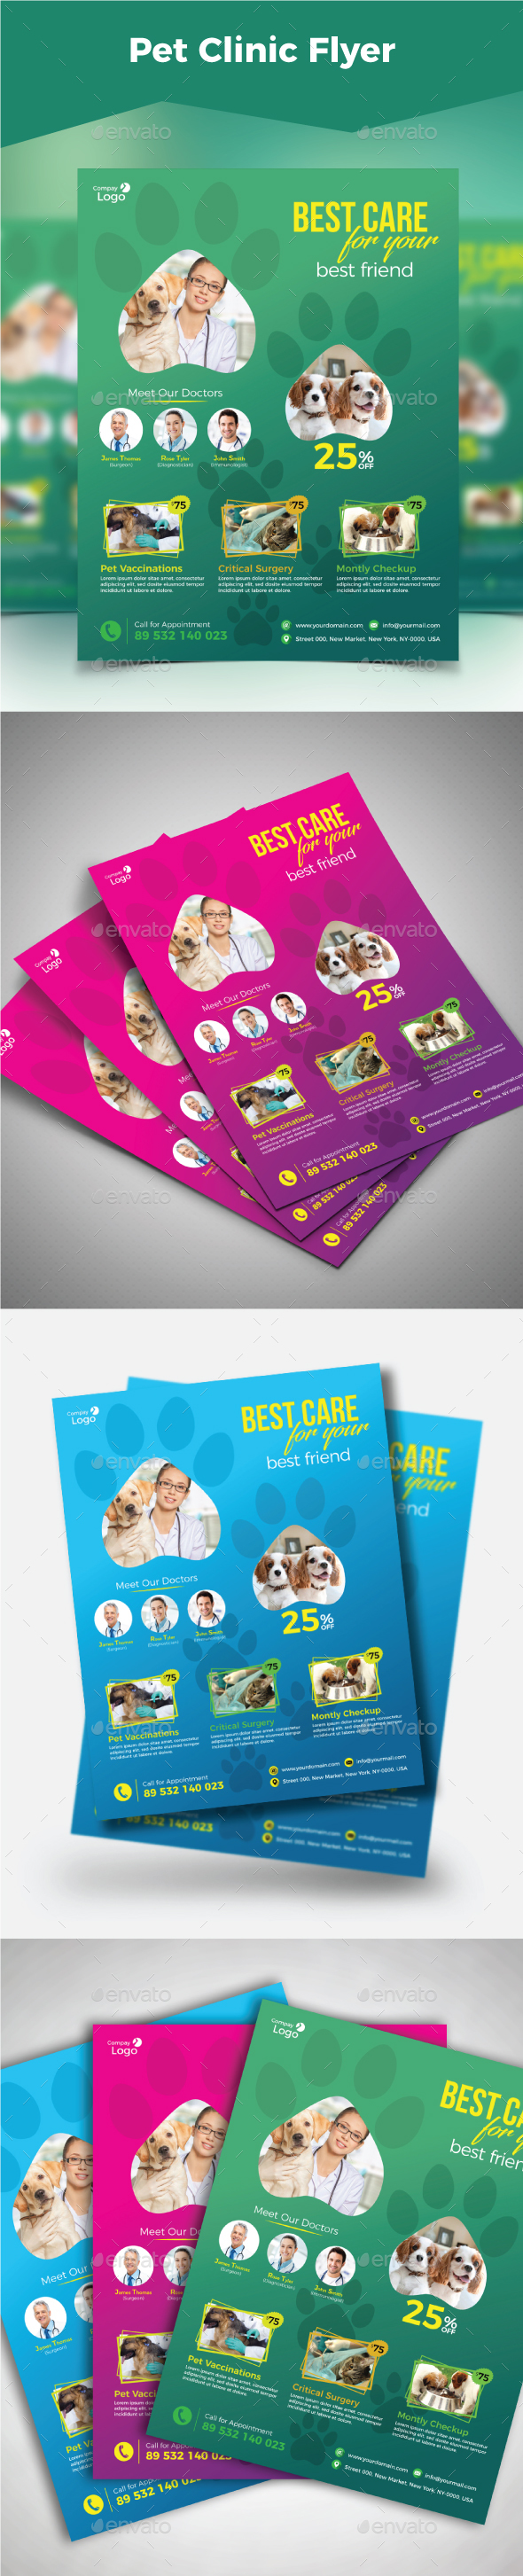 Pet Clinic Flyer - Flyers Print Templates